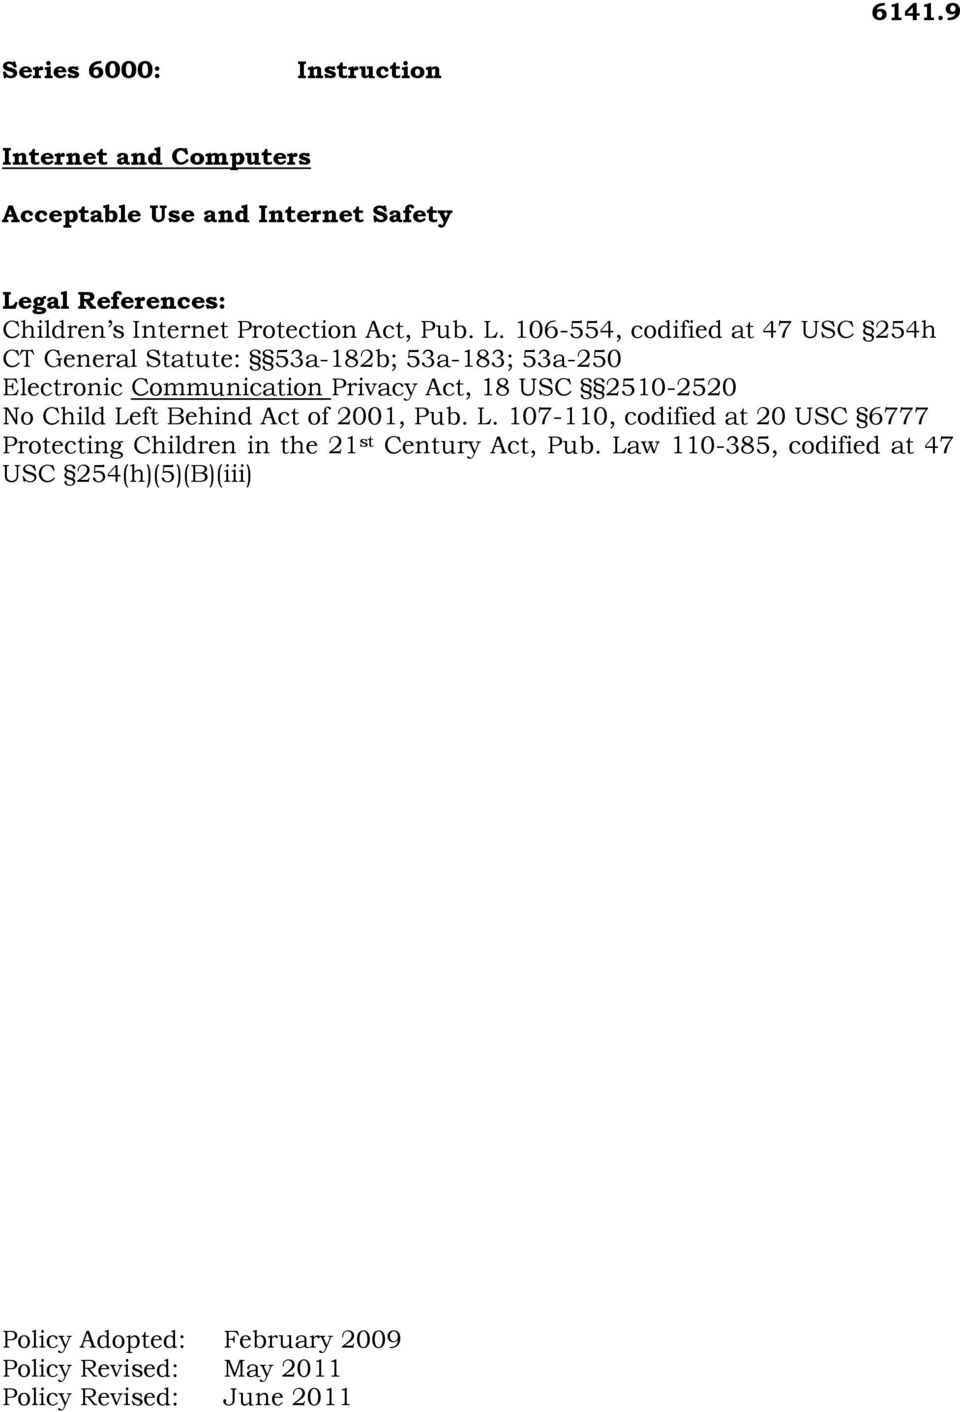 106-554, codified at 47 USC 254h CT General Statute: 53a-182b; 53a-183; 53a-250 Electronic Communication Privacy Act, 18